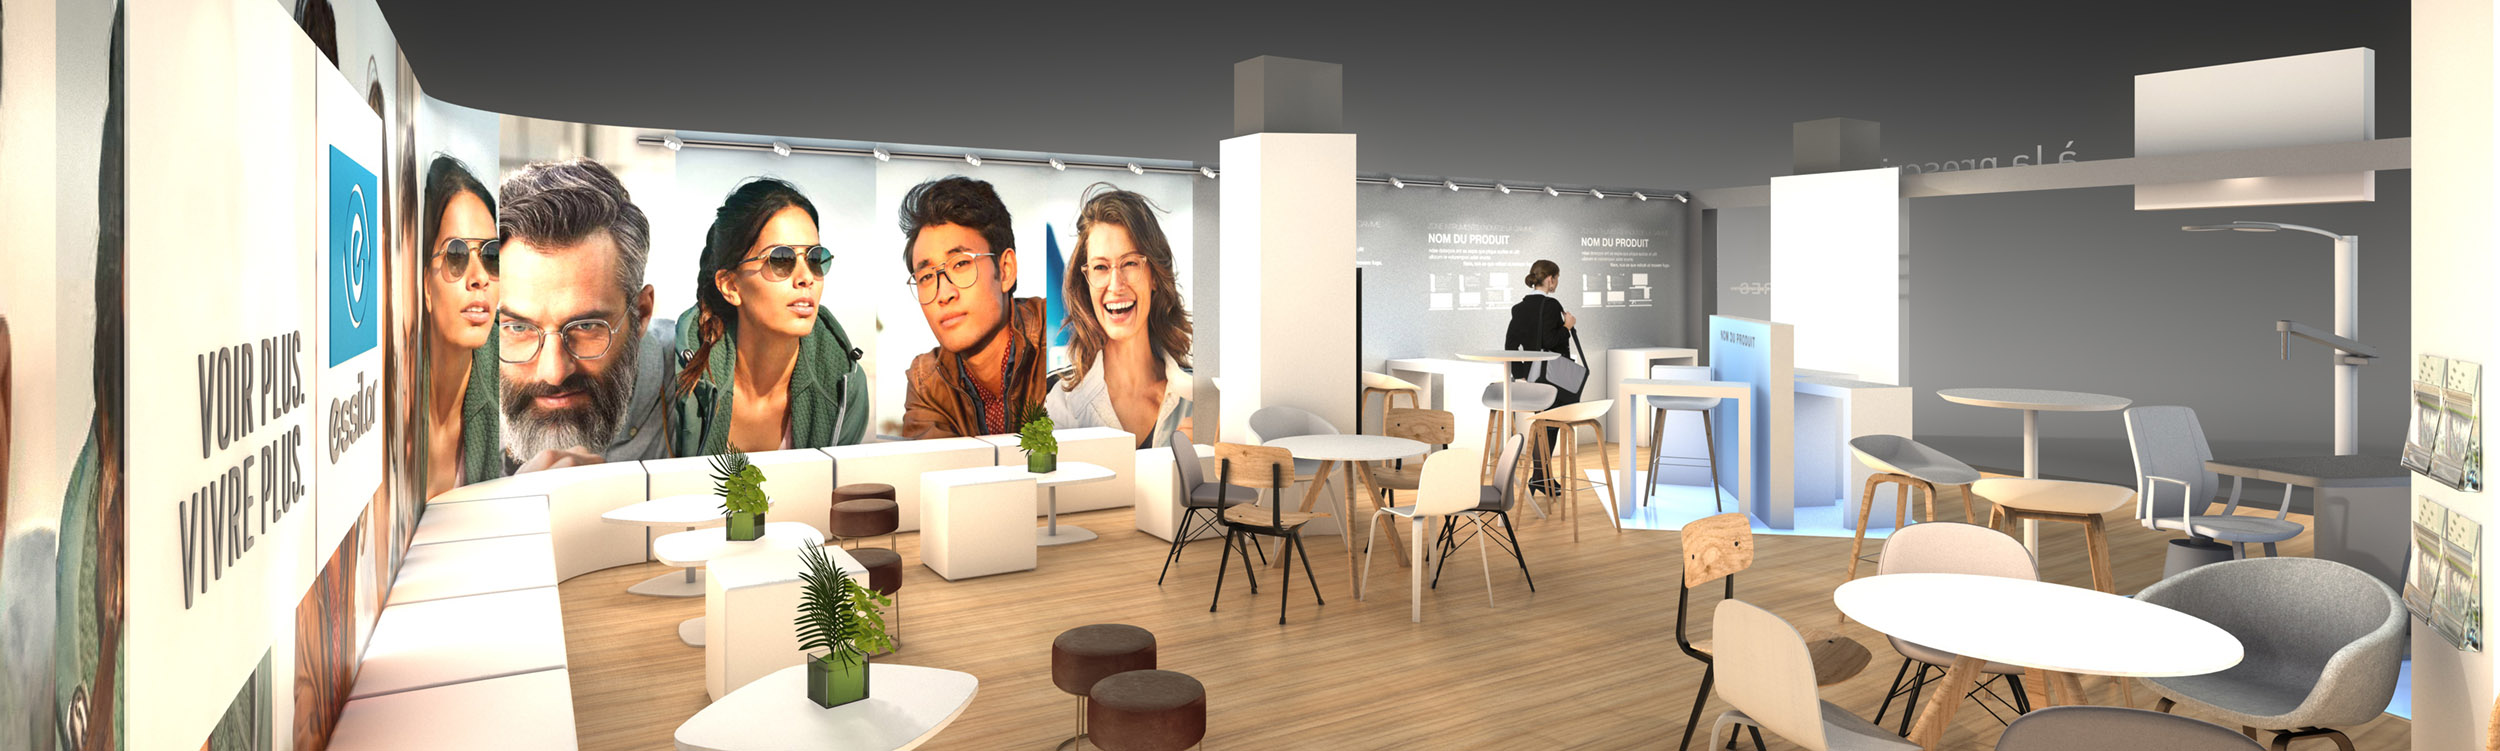 stand booth essilor sfo 12.jpg